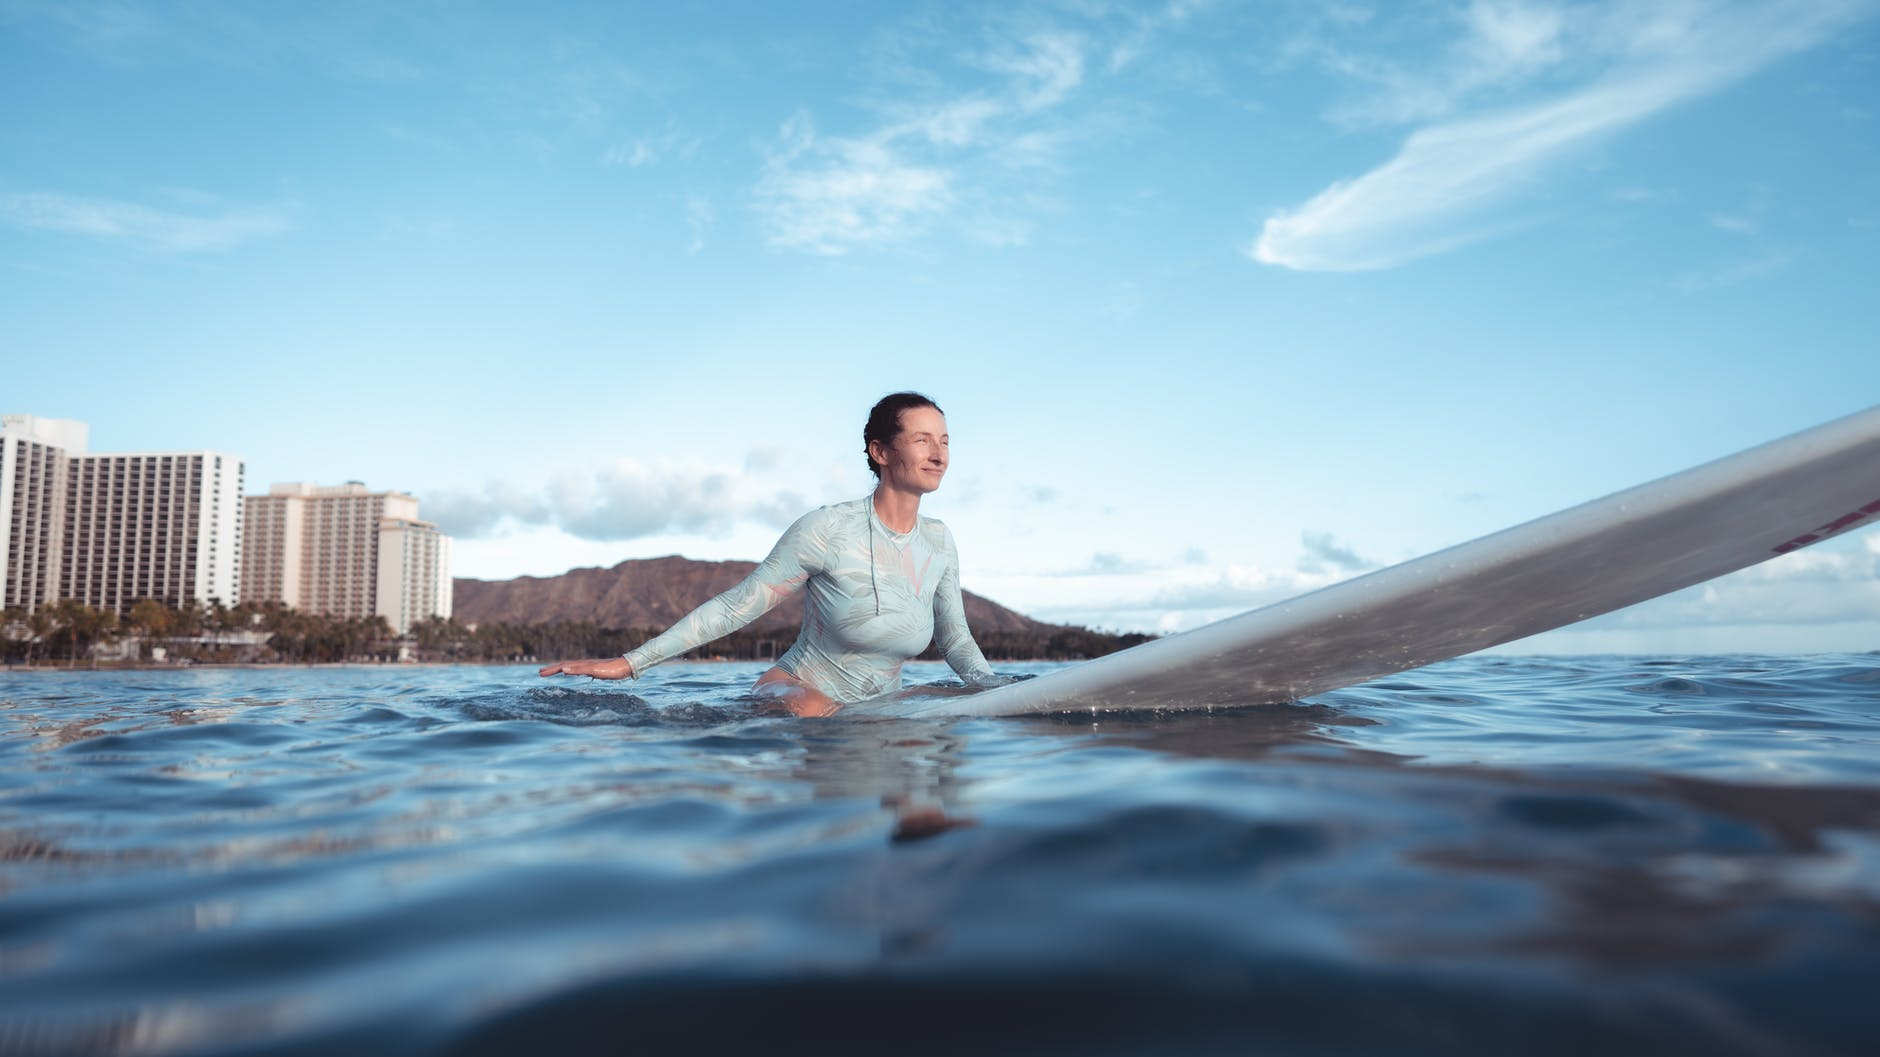 sporty young lady sitting on surfboard in ocean